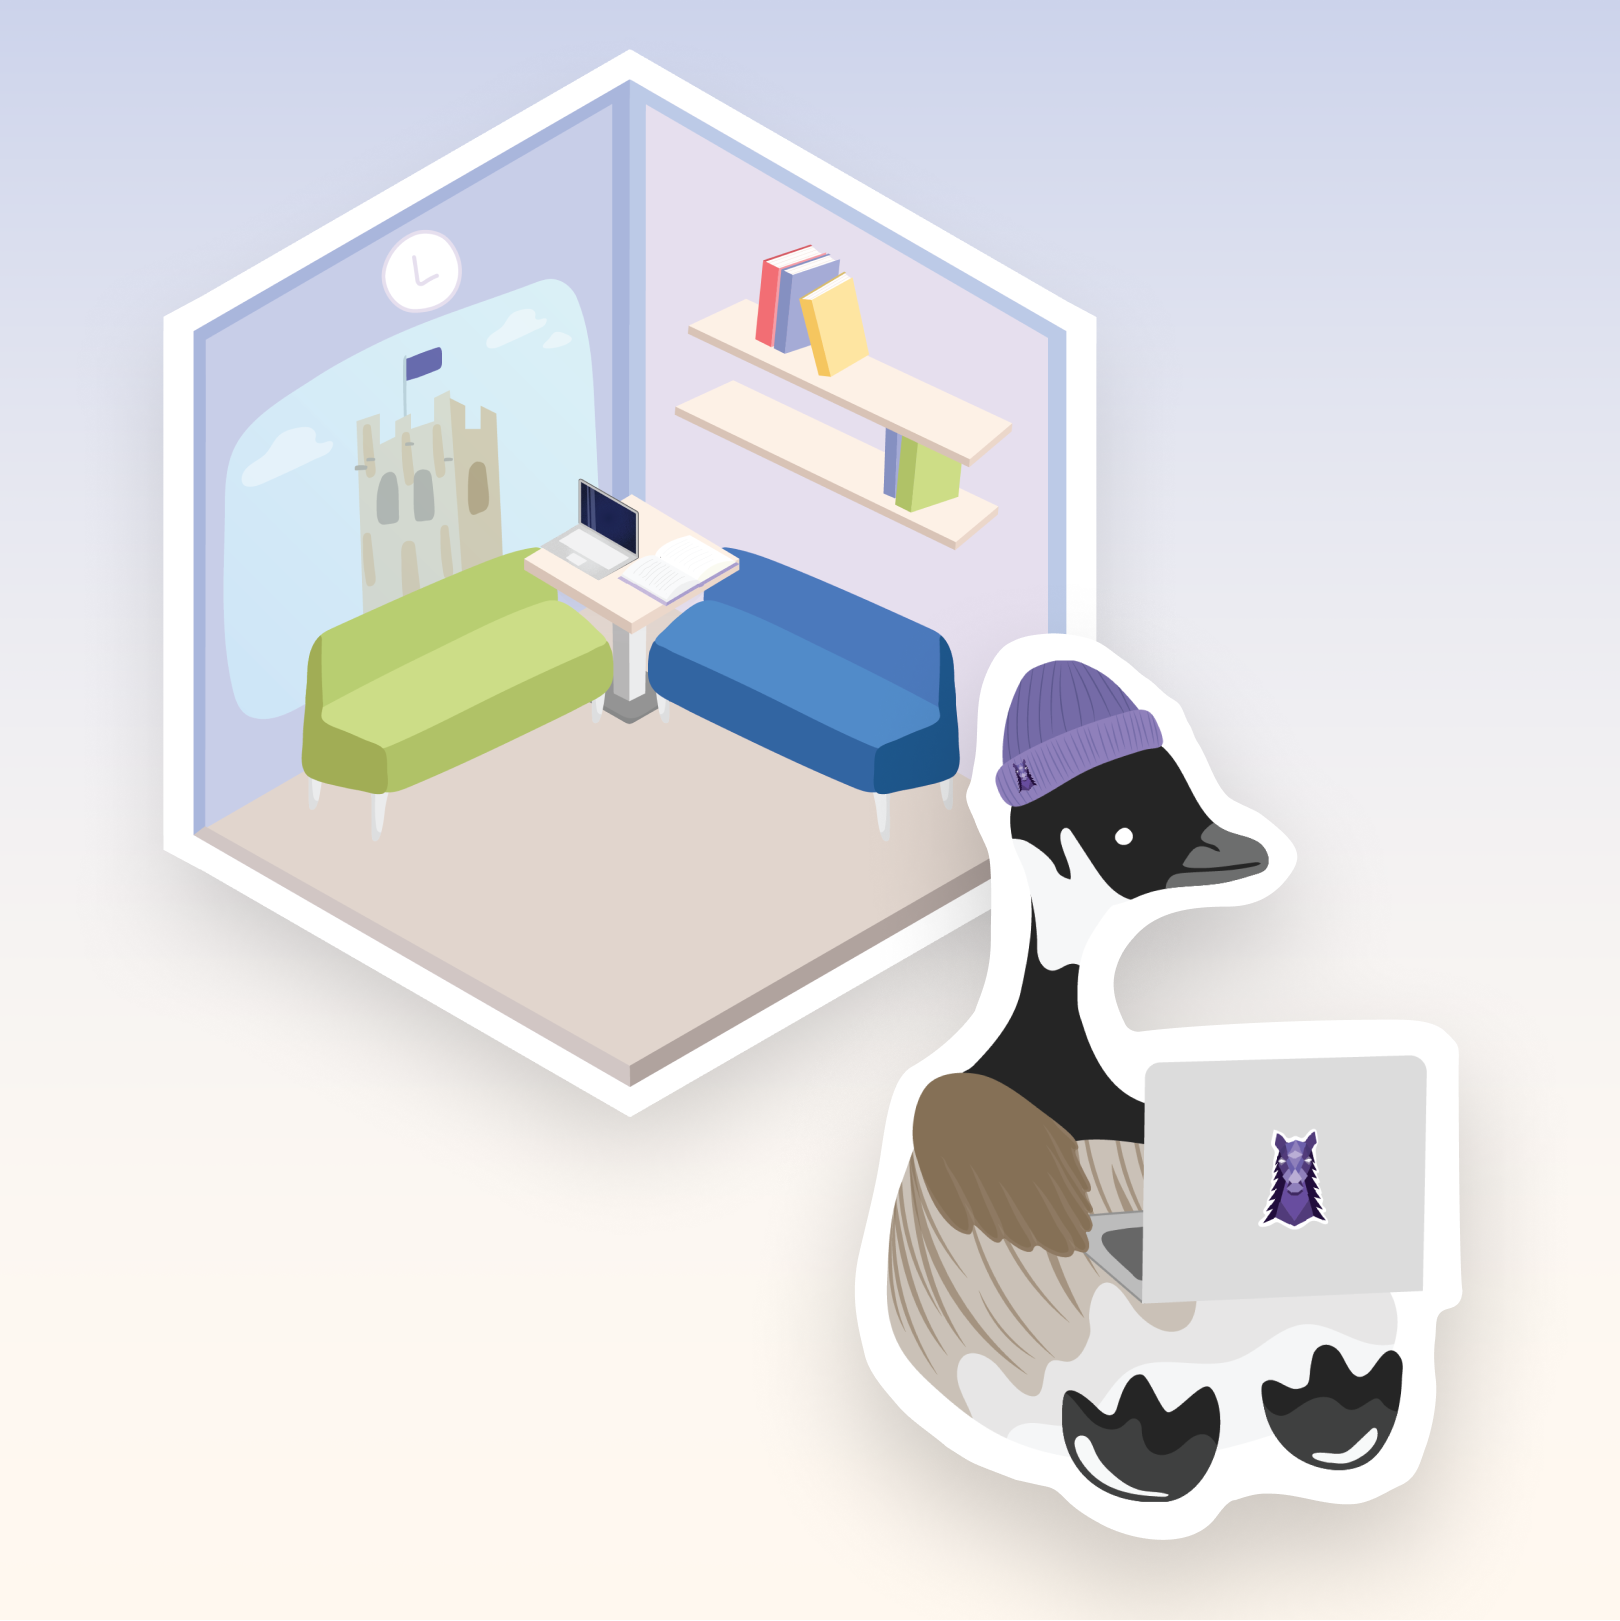 Two sticker illustrations, one of an isometric room and one of a goose hacking on a laptop wearing a Western toque